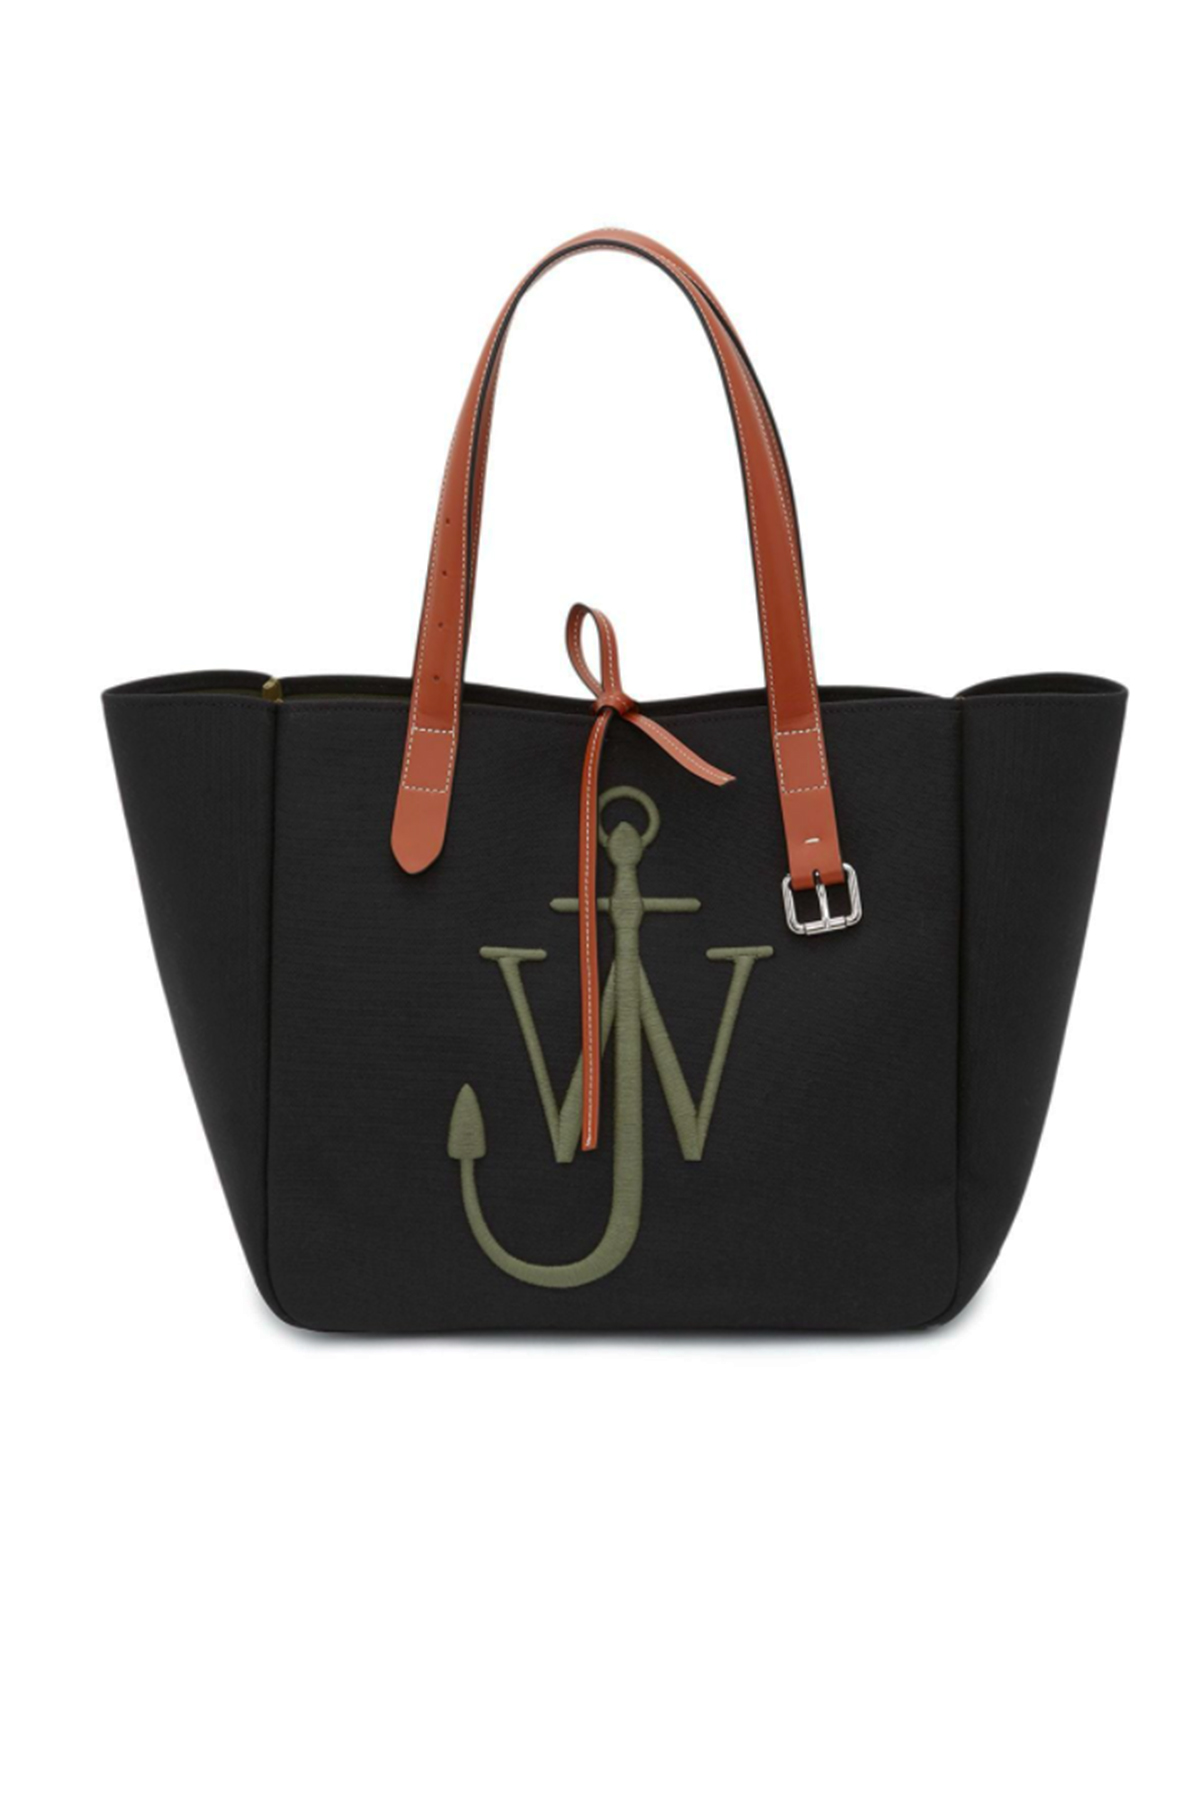 Jw Anderson Canvases J.W.ANDERSON BAGS.